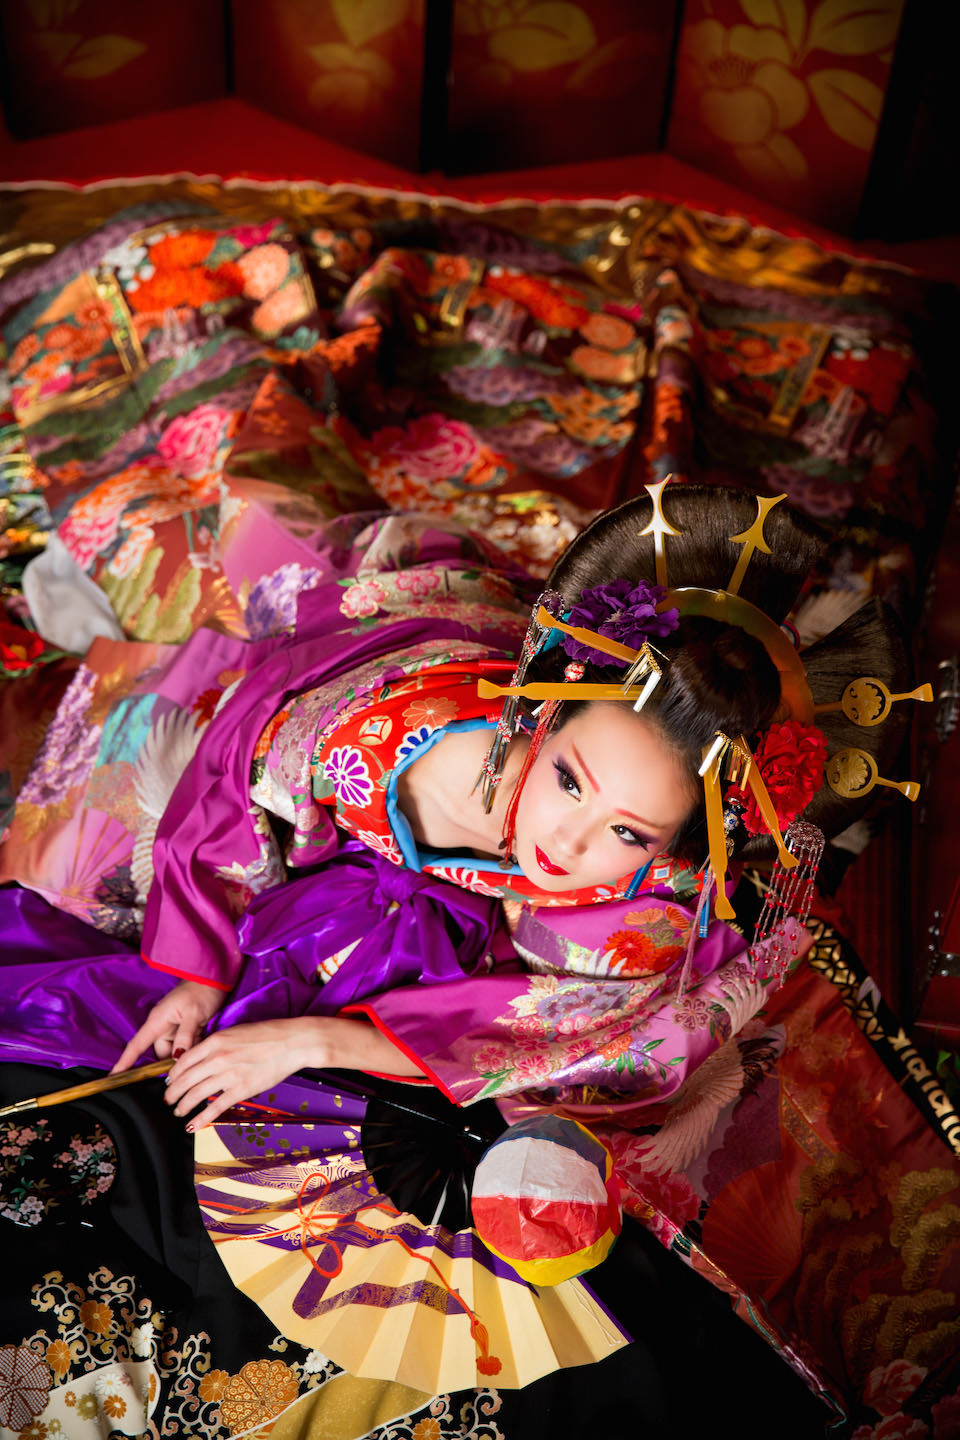 Sexy oiran laying dowon on the tatami floor with beautiful Kimono with a lot of hair accesories. This artistic oiran photo was taken by Studio Esperanto for make-over photo shoot in Kyoto Japan.